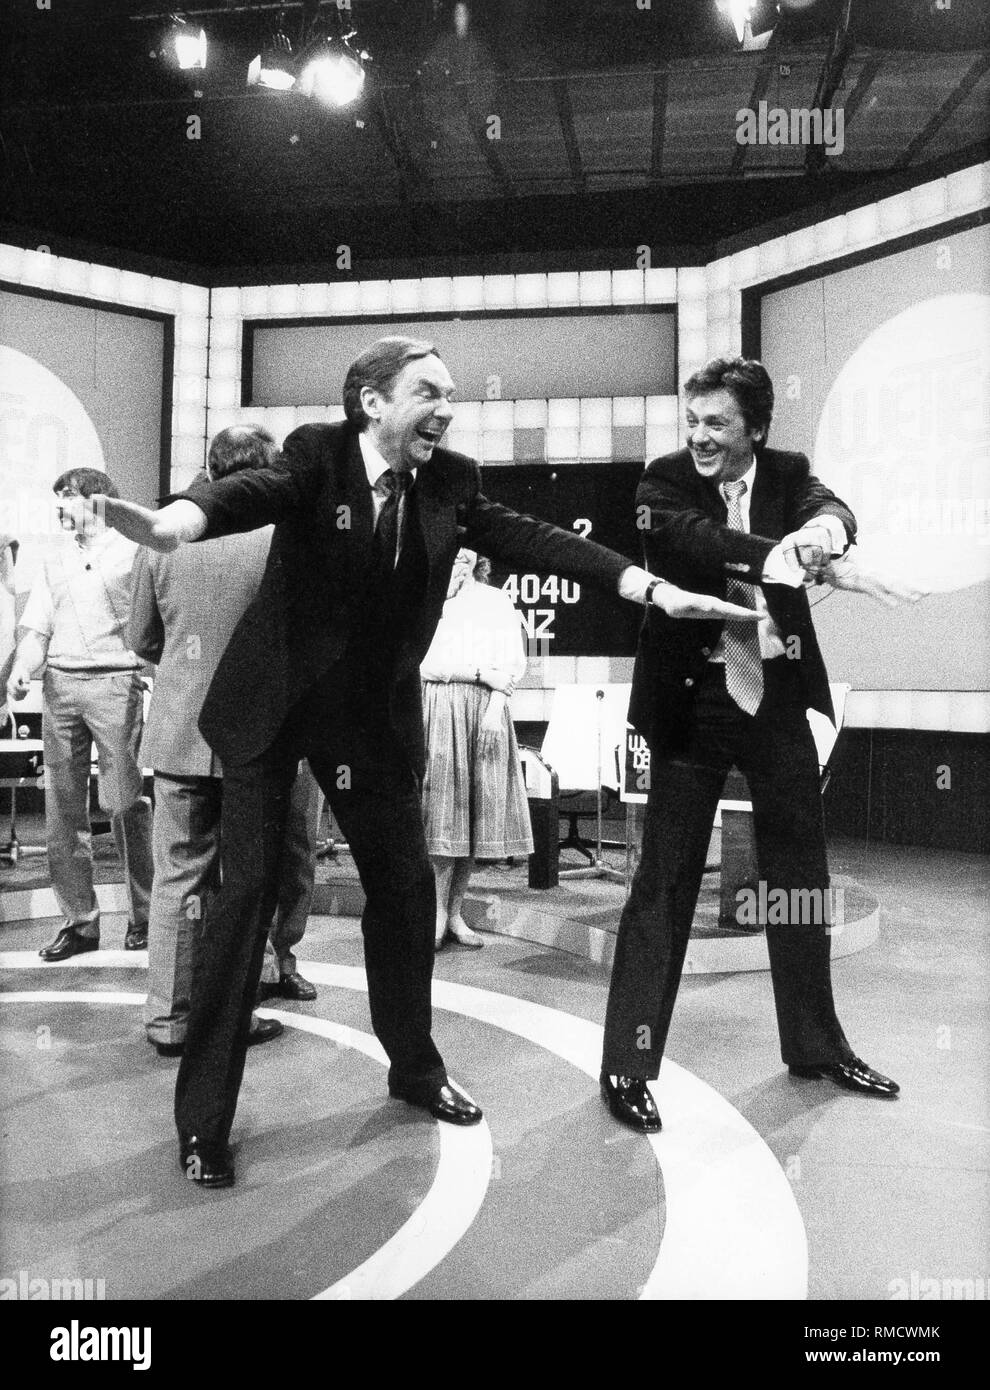 Harald Juhnke with Alain Delon in a show of 'Wetten, dass...'.. - Stock Image